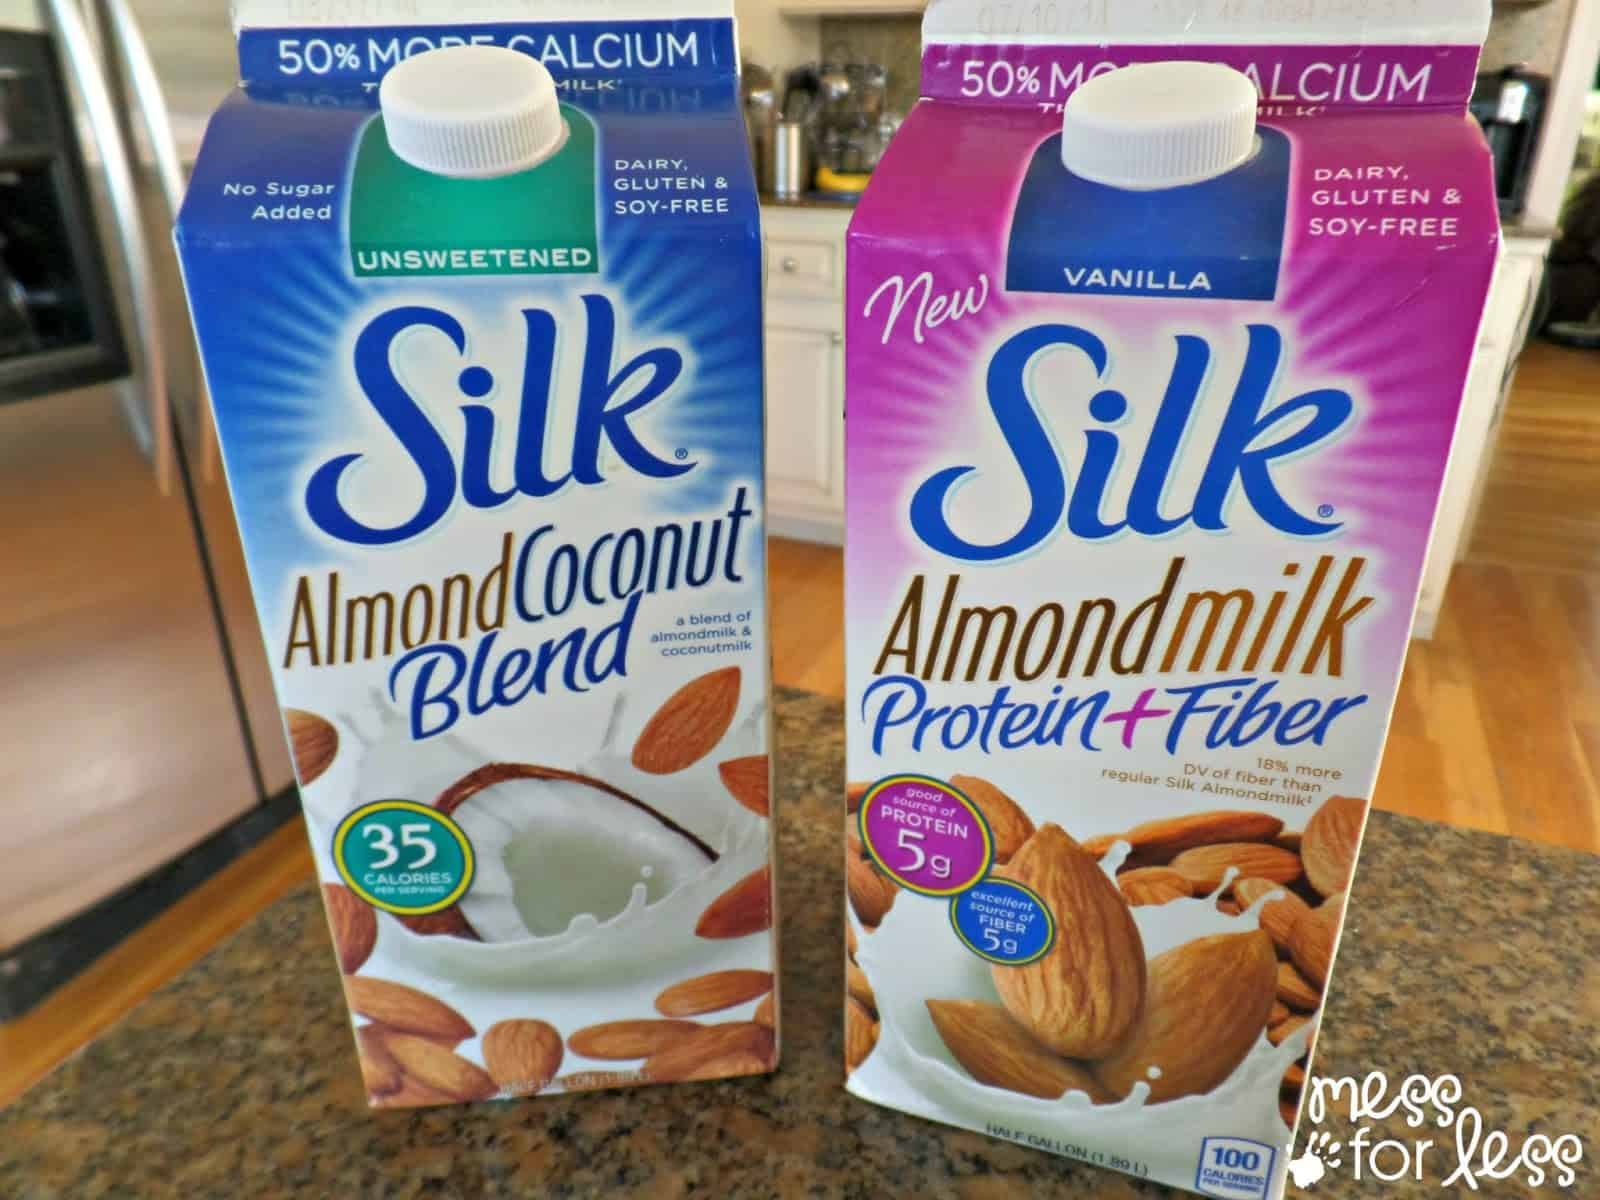 Silk Almondmilk #SilkAlmondBlends #shop #cbias